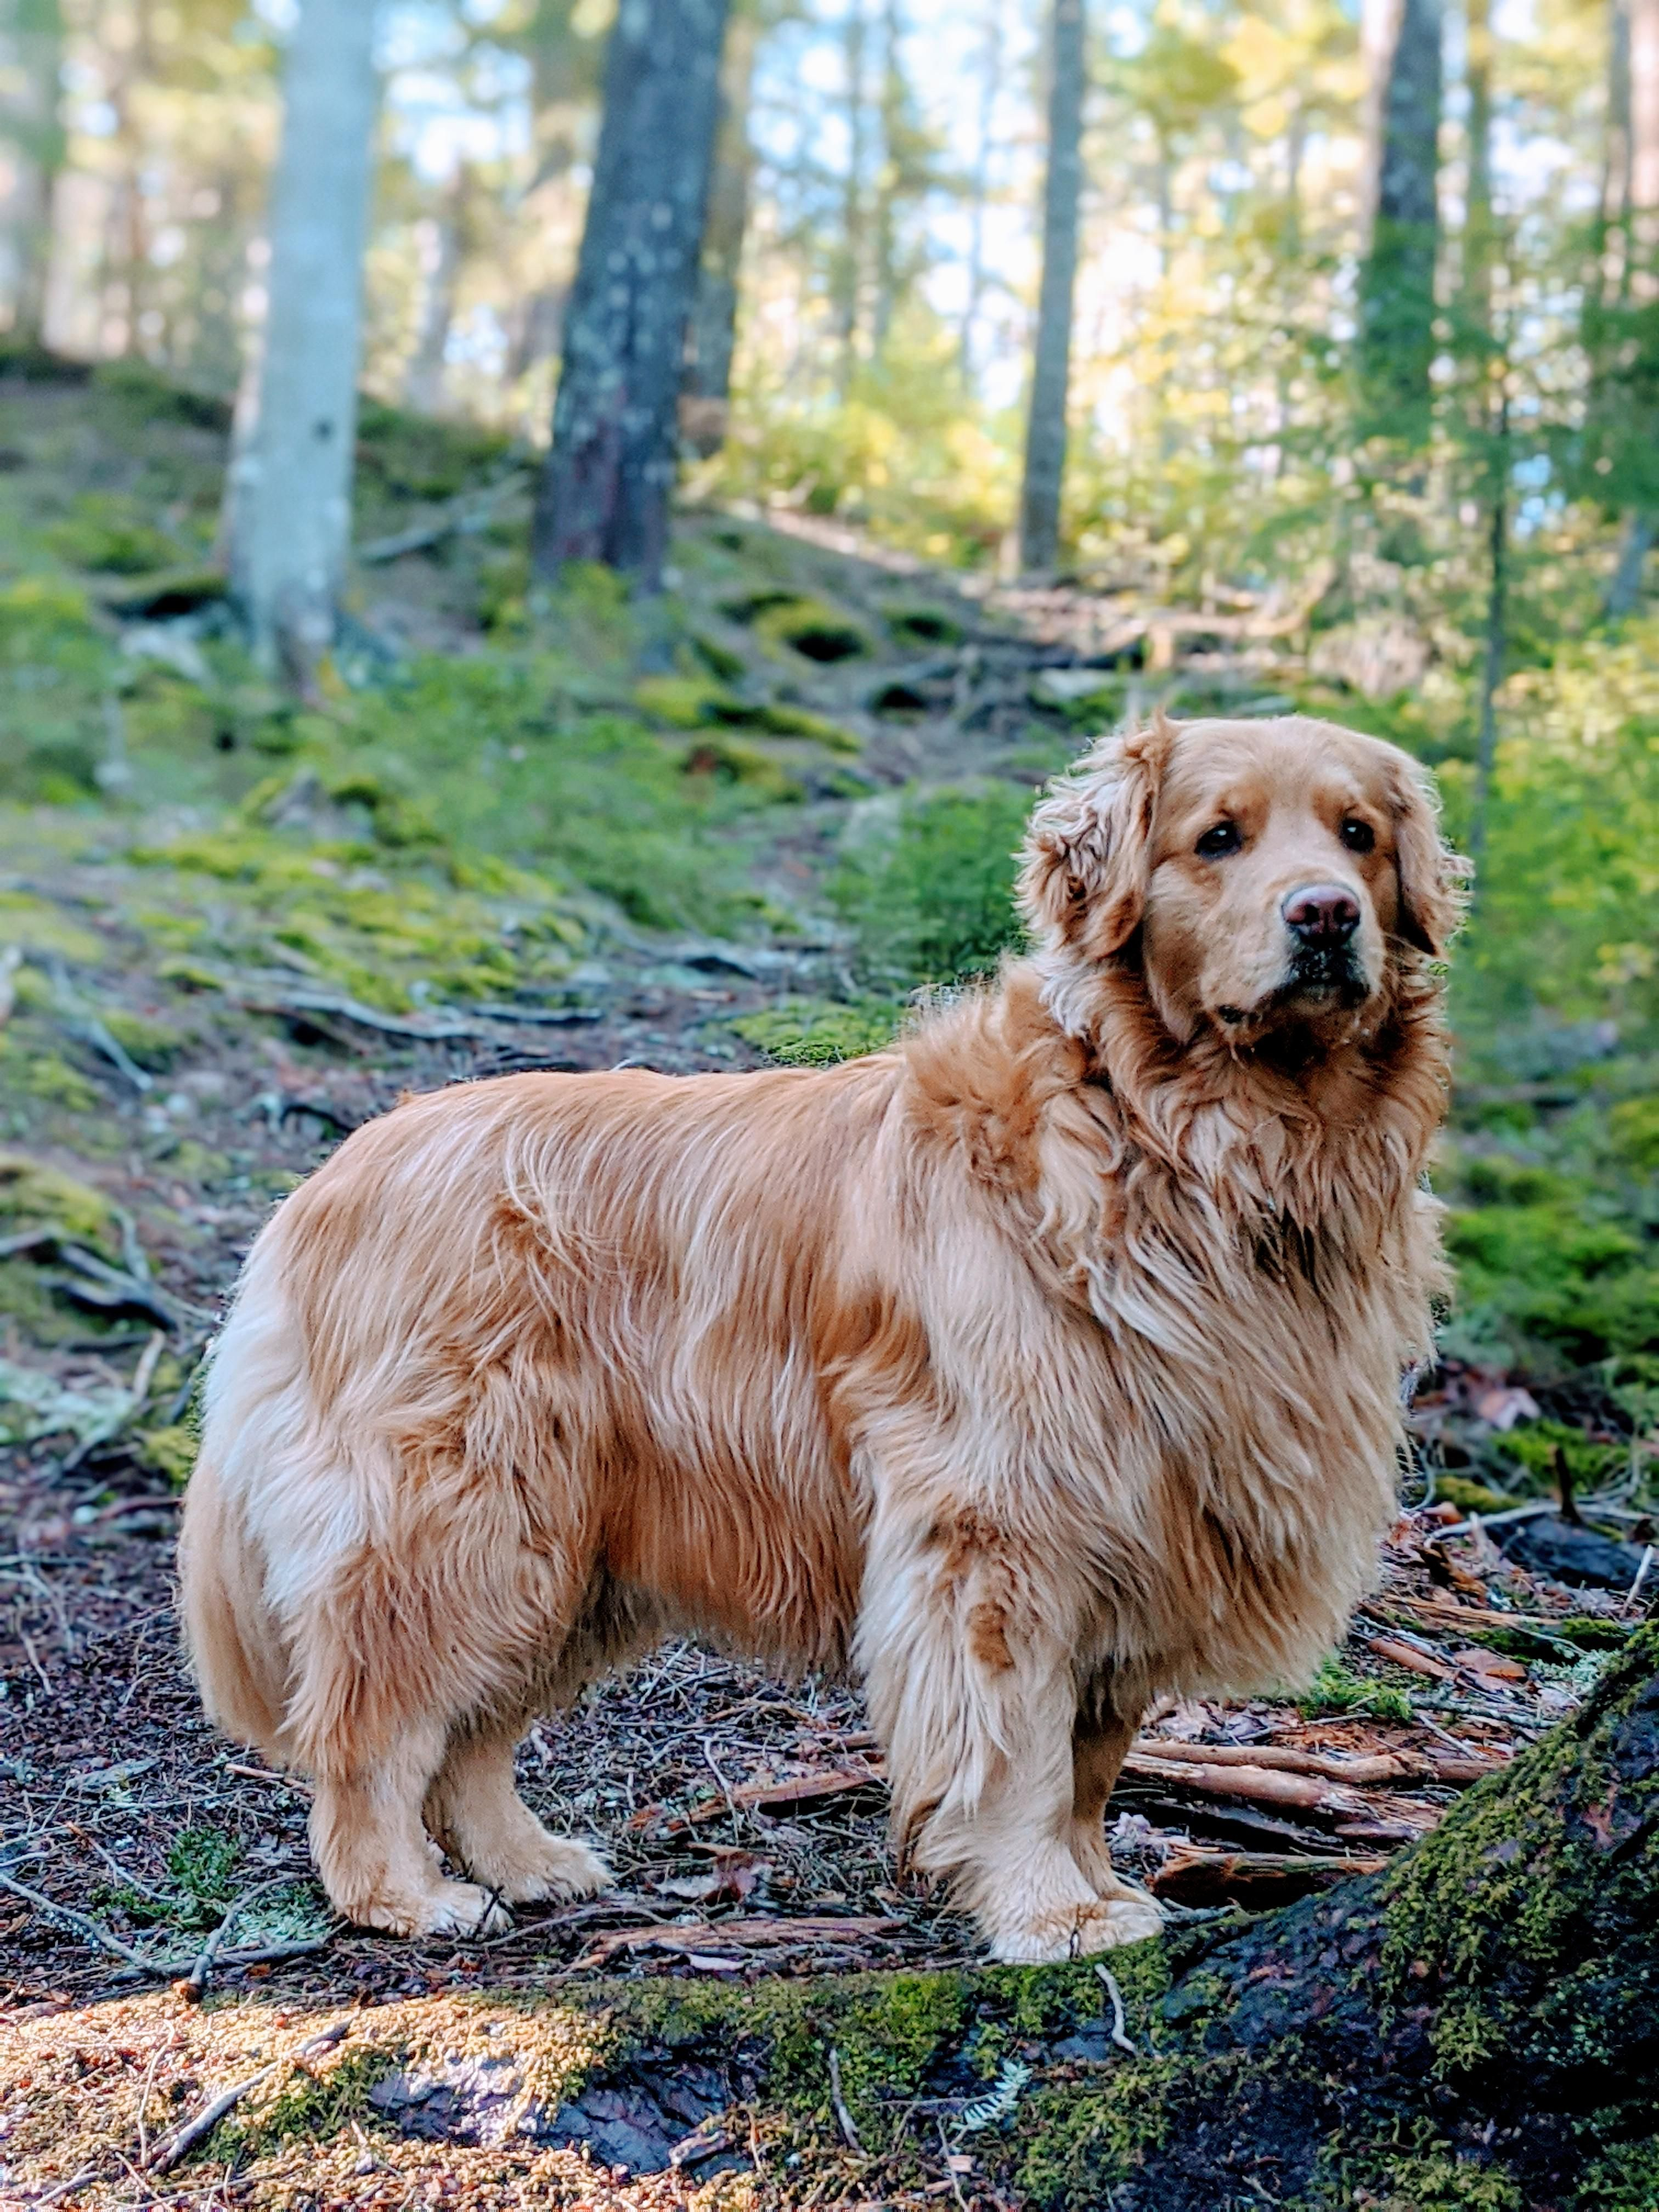 47 Adorable Golden Retriever Mix Breeds In 2020 With Images Golden Retriever Dogs Golden Retriever Retriever Mix